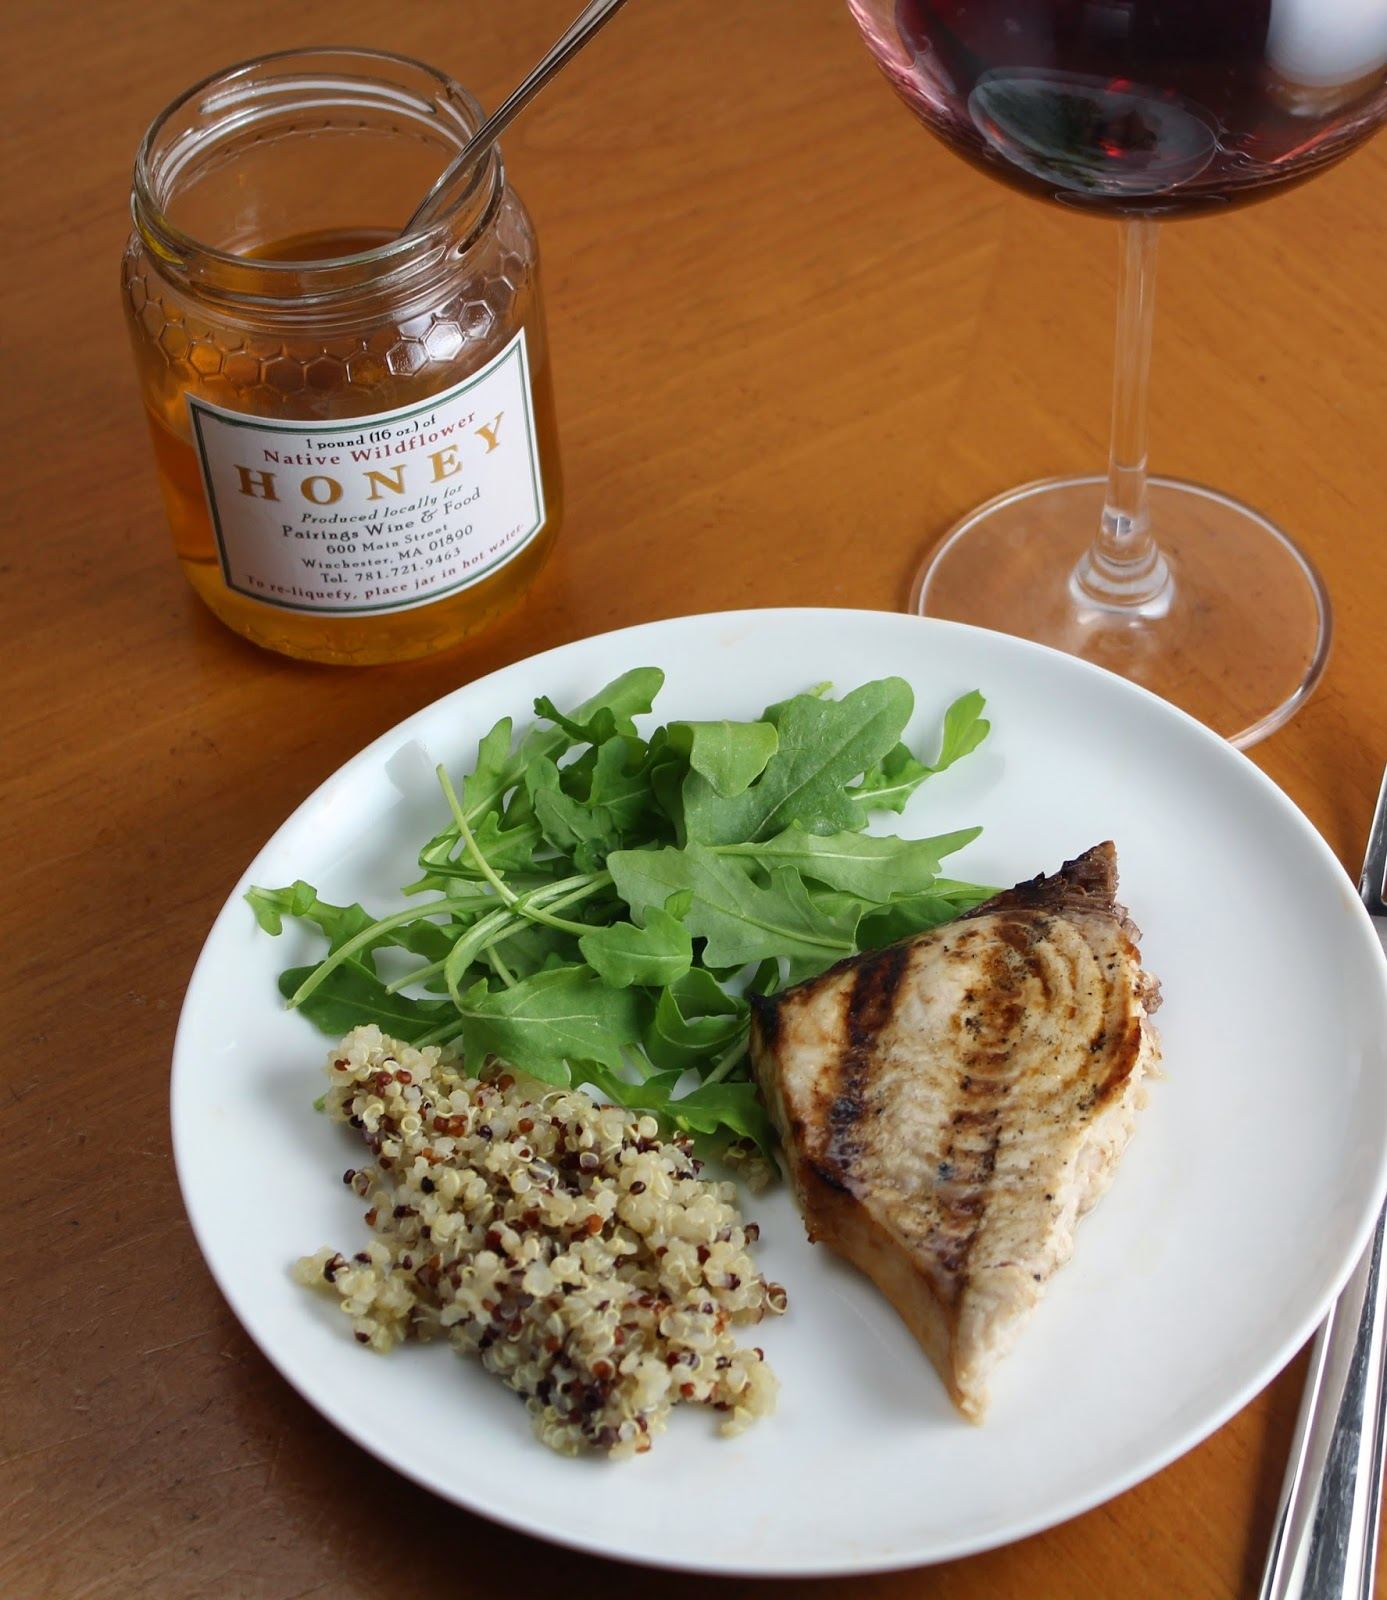 Grilled Swordfish with Garlic Soy Marinade